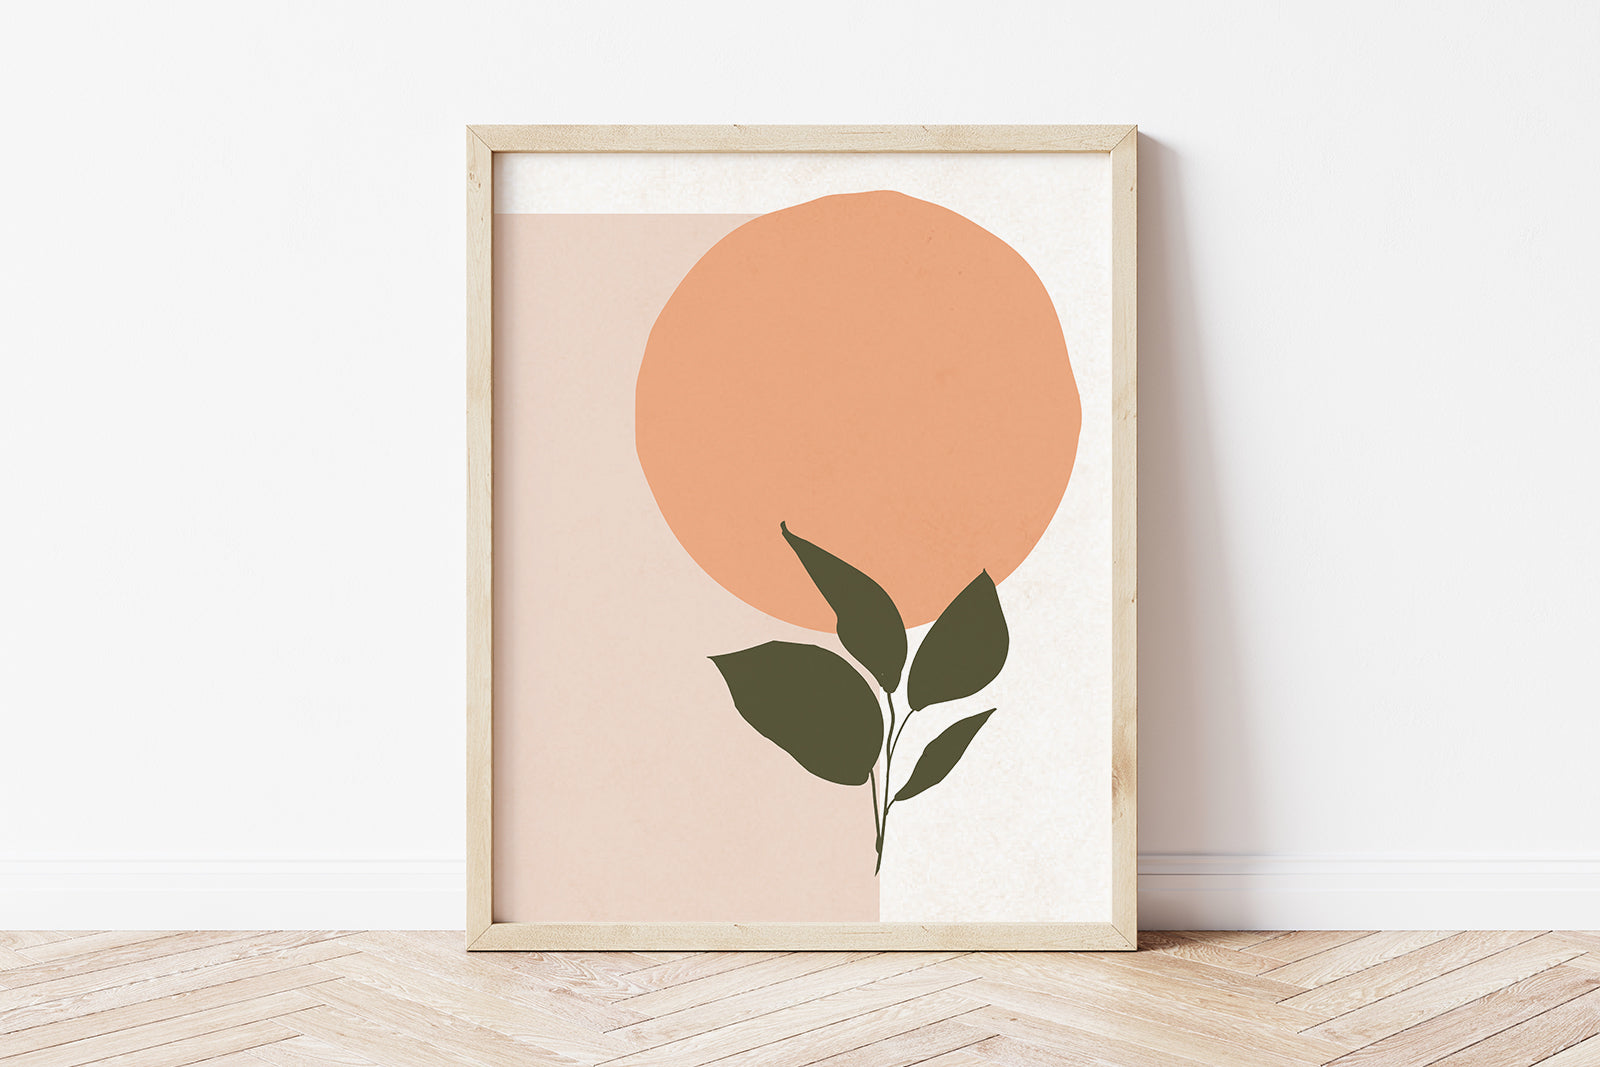 Avery abstract art print